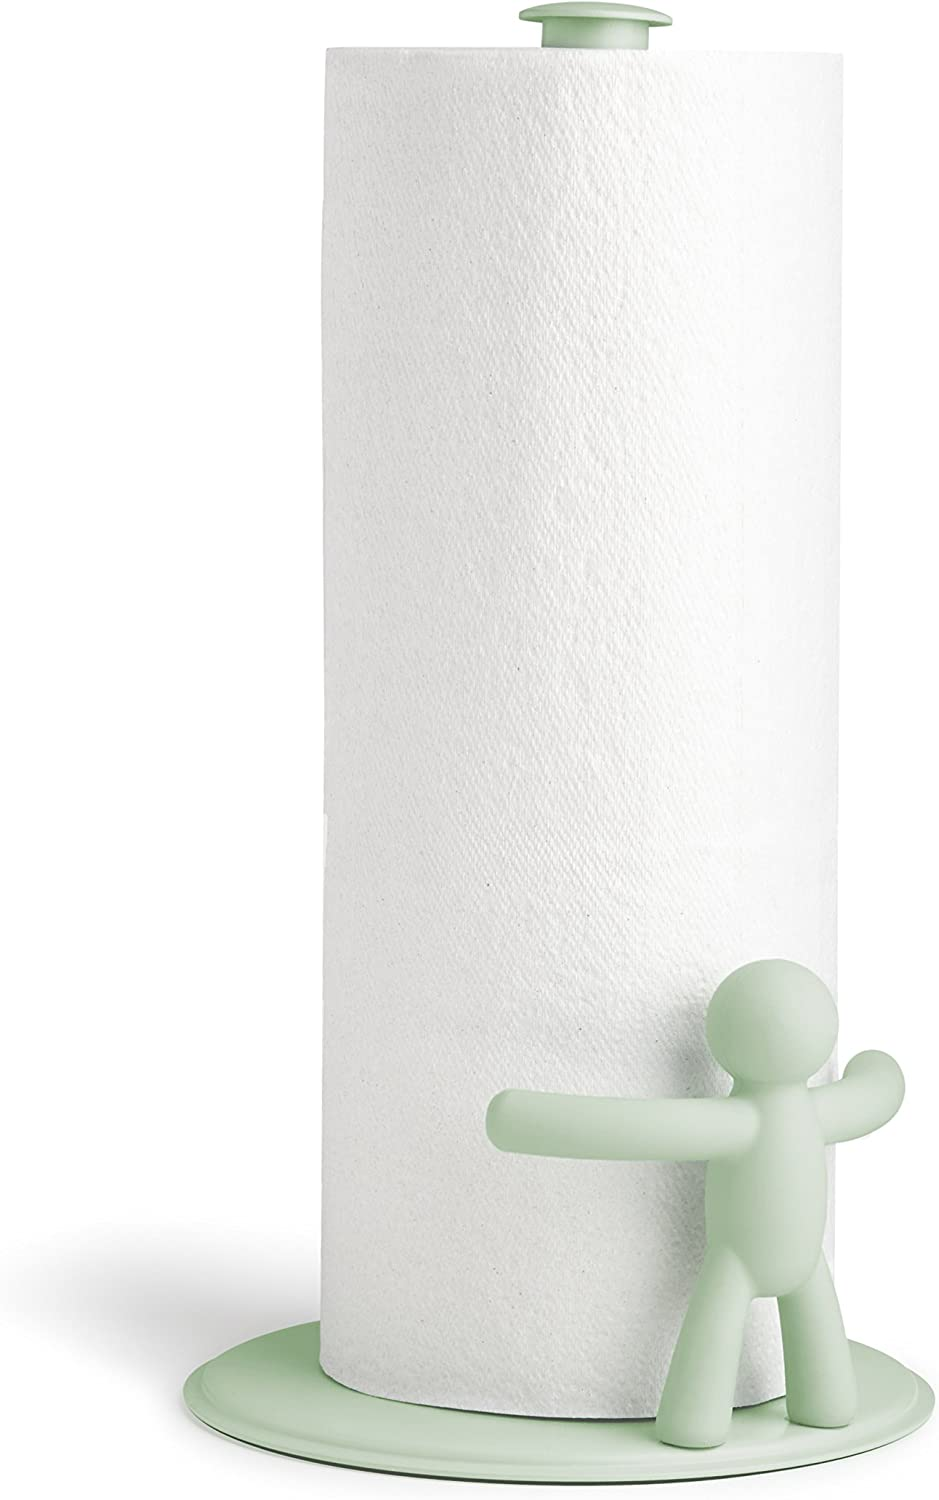 Mint Green the Original Fun and Functional Soft-Touch Design Umbra Buddy Paper Towel Holder